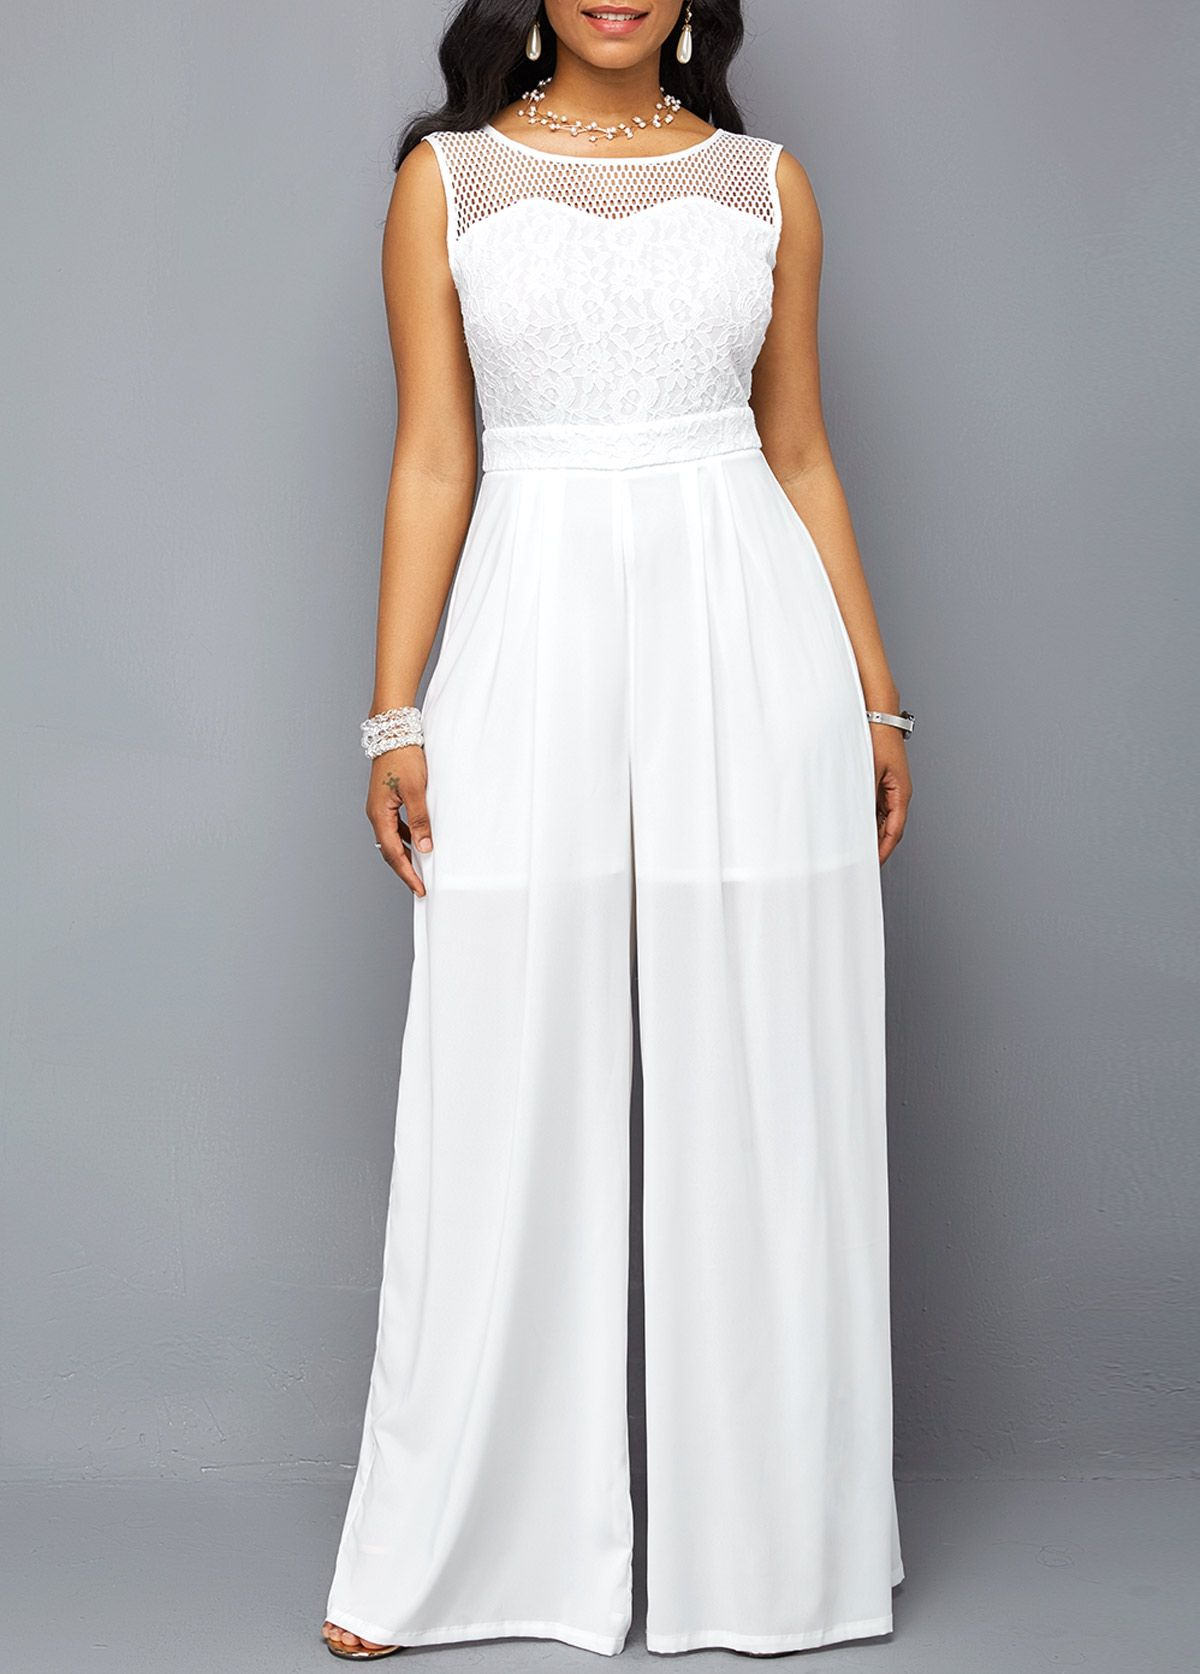 69422224fd1a Round Neck Lace Patchwork Sleeveless White Jumpsuit